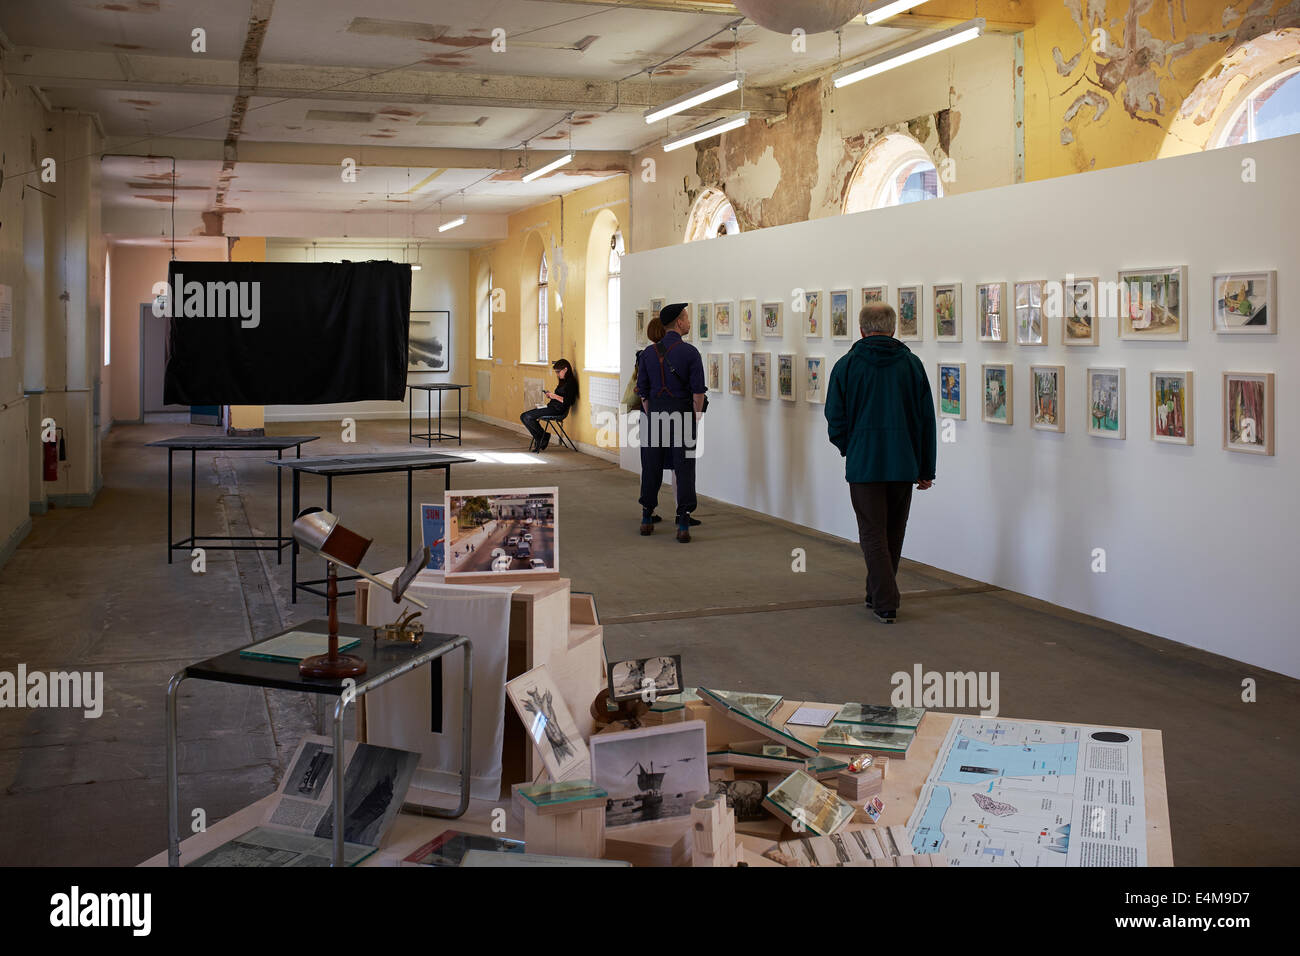 Visitors to the Liverpool Biennial 2014 at The Old Blind School - Stock Image